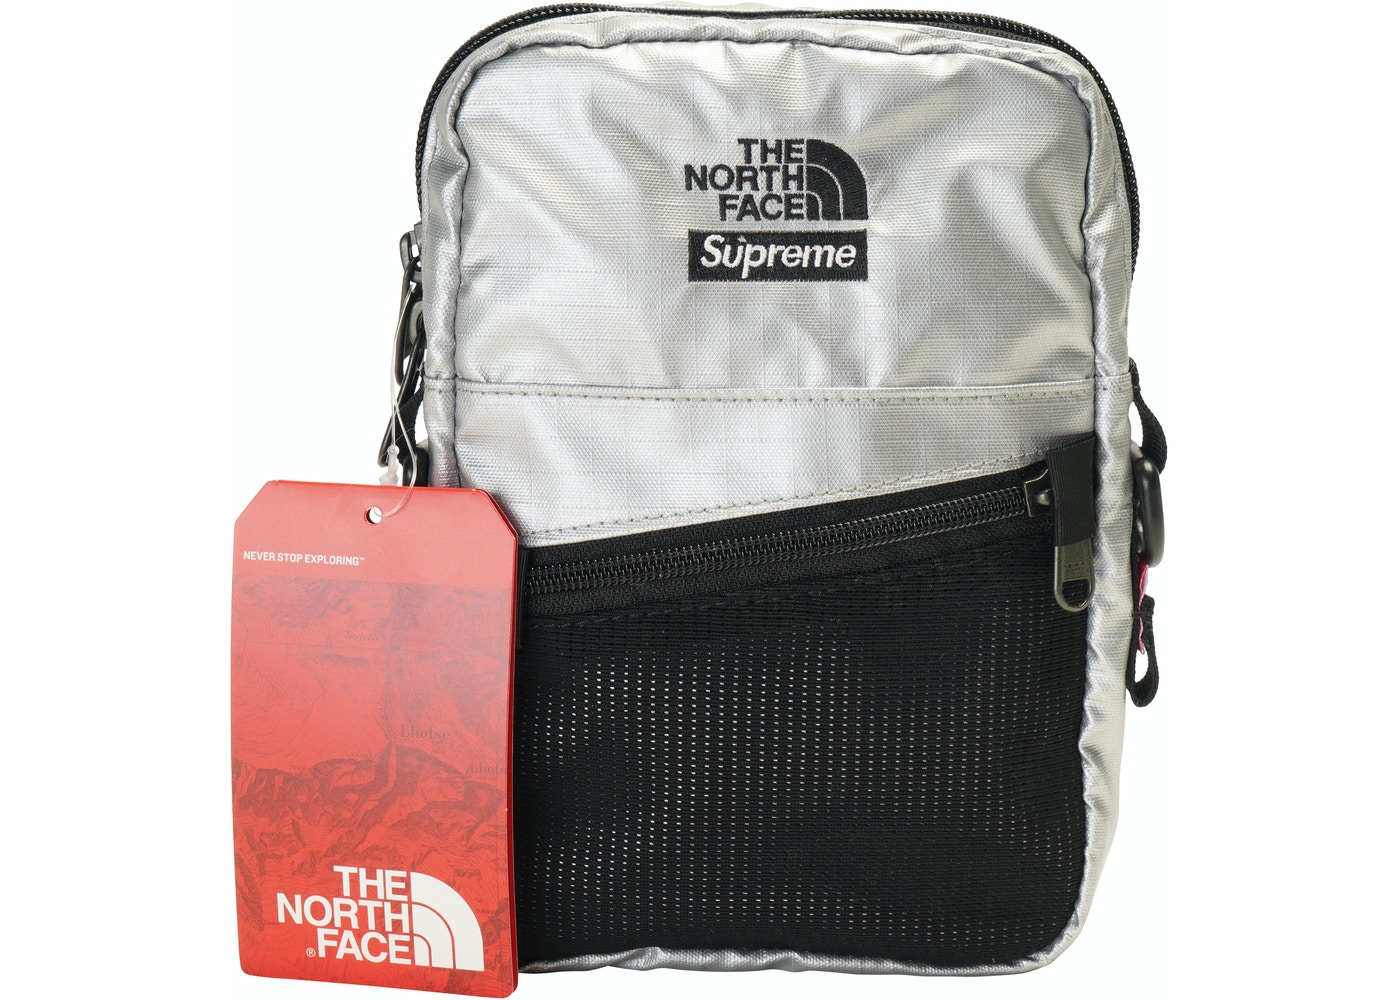 7ea354252 Supreme The North Face Metallic Shoulder Bag Silver